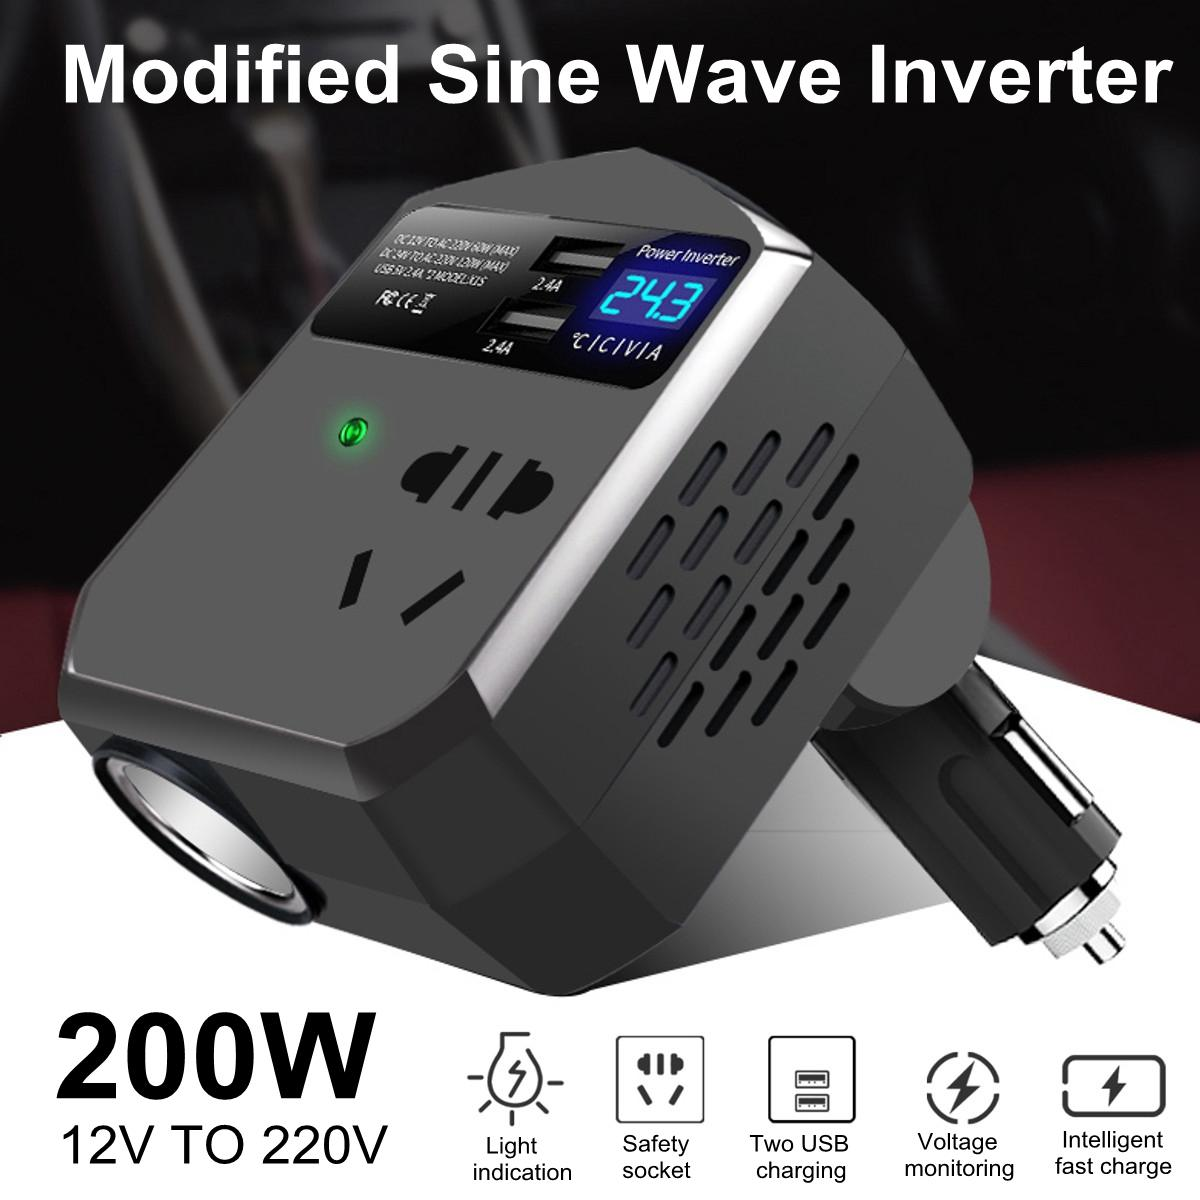 Mini Auto Power Inverter 12 V 200 W Power Inverter 12 V/24 V Auto Adapter Modifizierte Sinus Welle inverter LCD Display Schnelle Ladung image